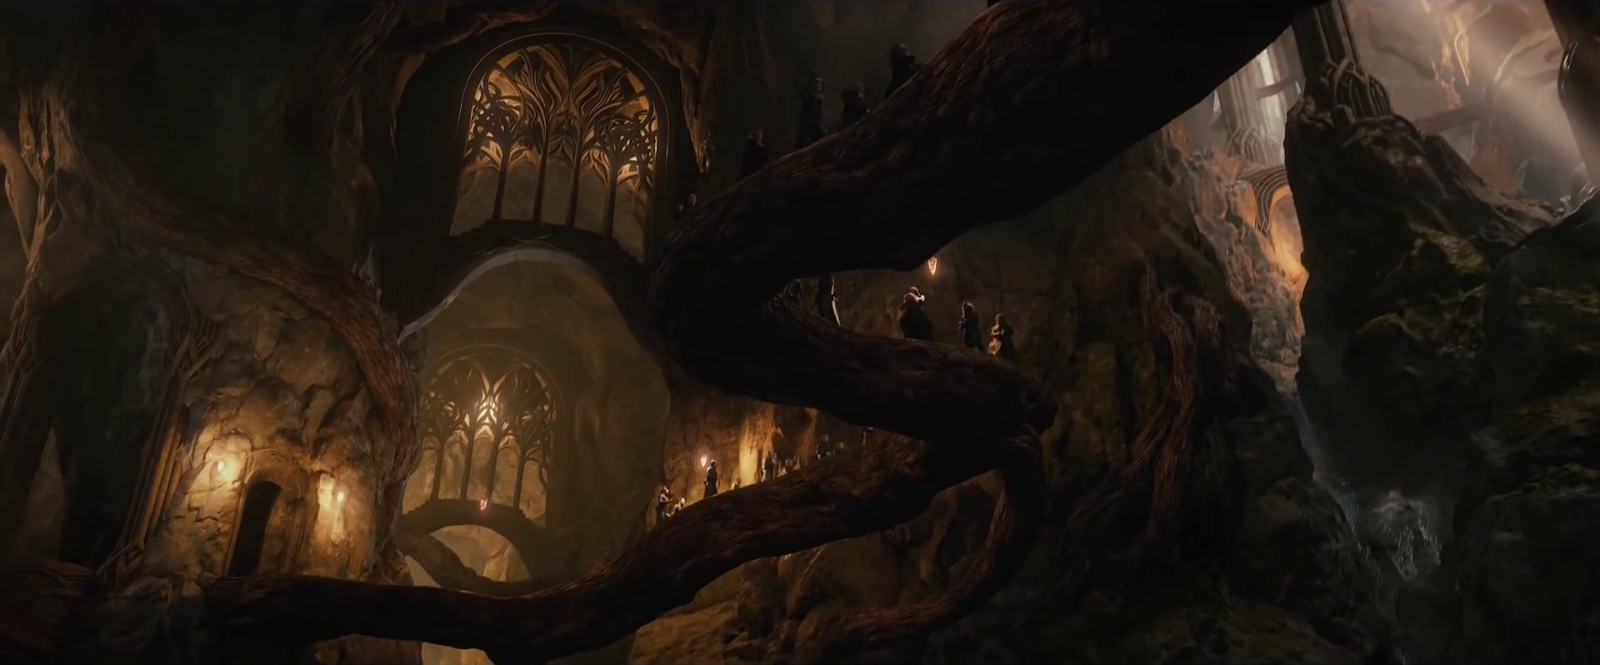 The Hobbit: The Desolation Of Smaug 700Mb MKV Brrip 720p Full Movie